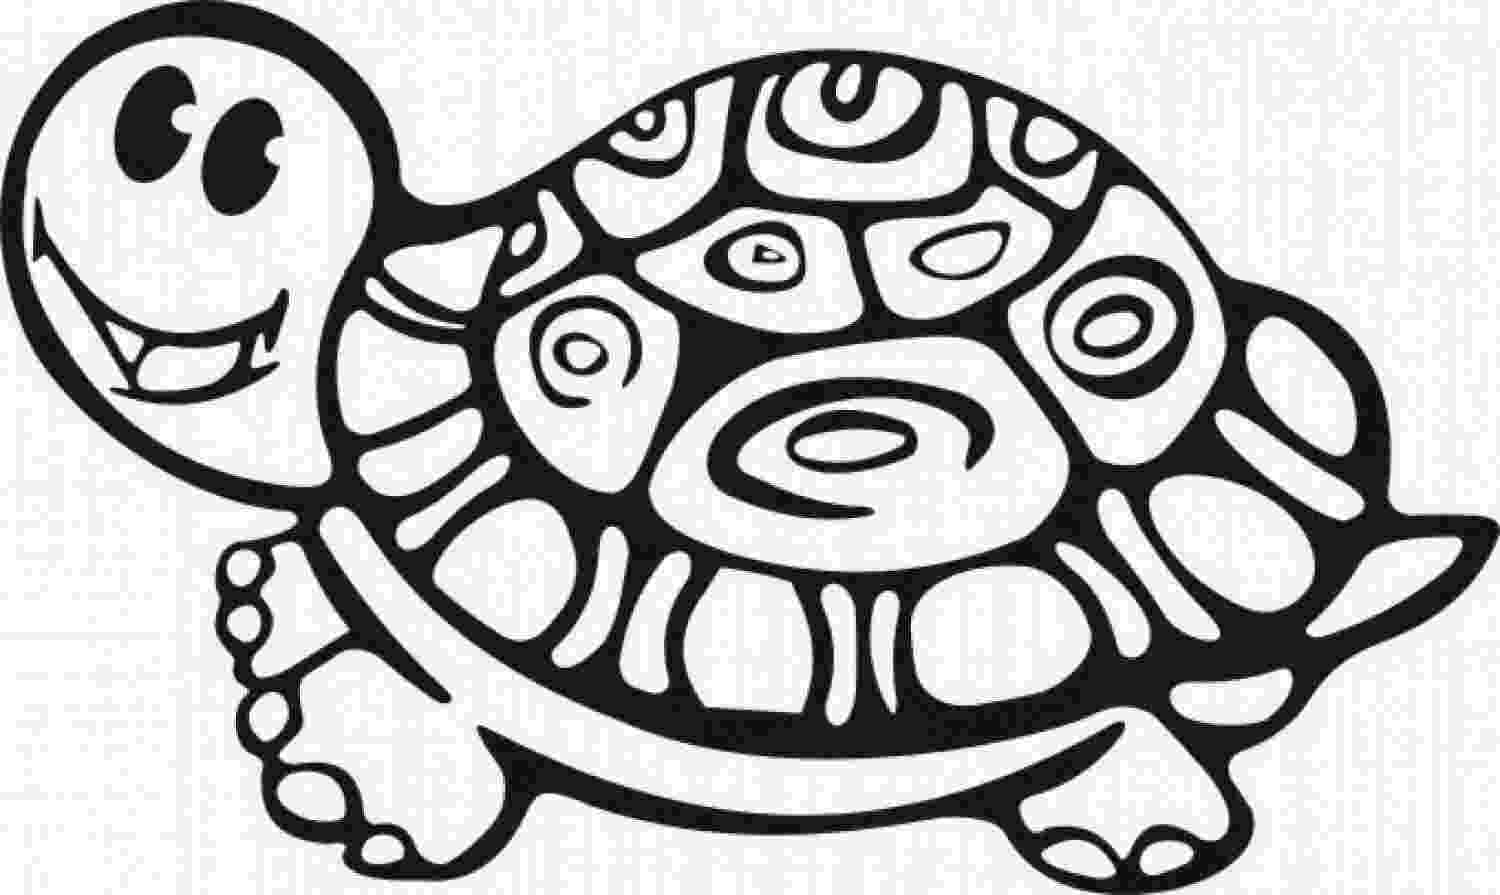 coloring page of turtle turtles free to color for kids turtles kids coloring pages page turtle coloring of